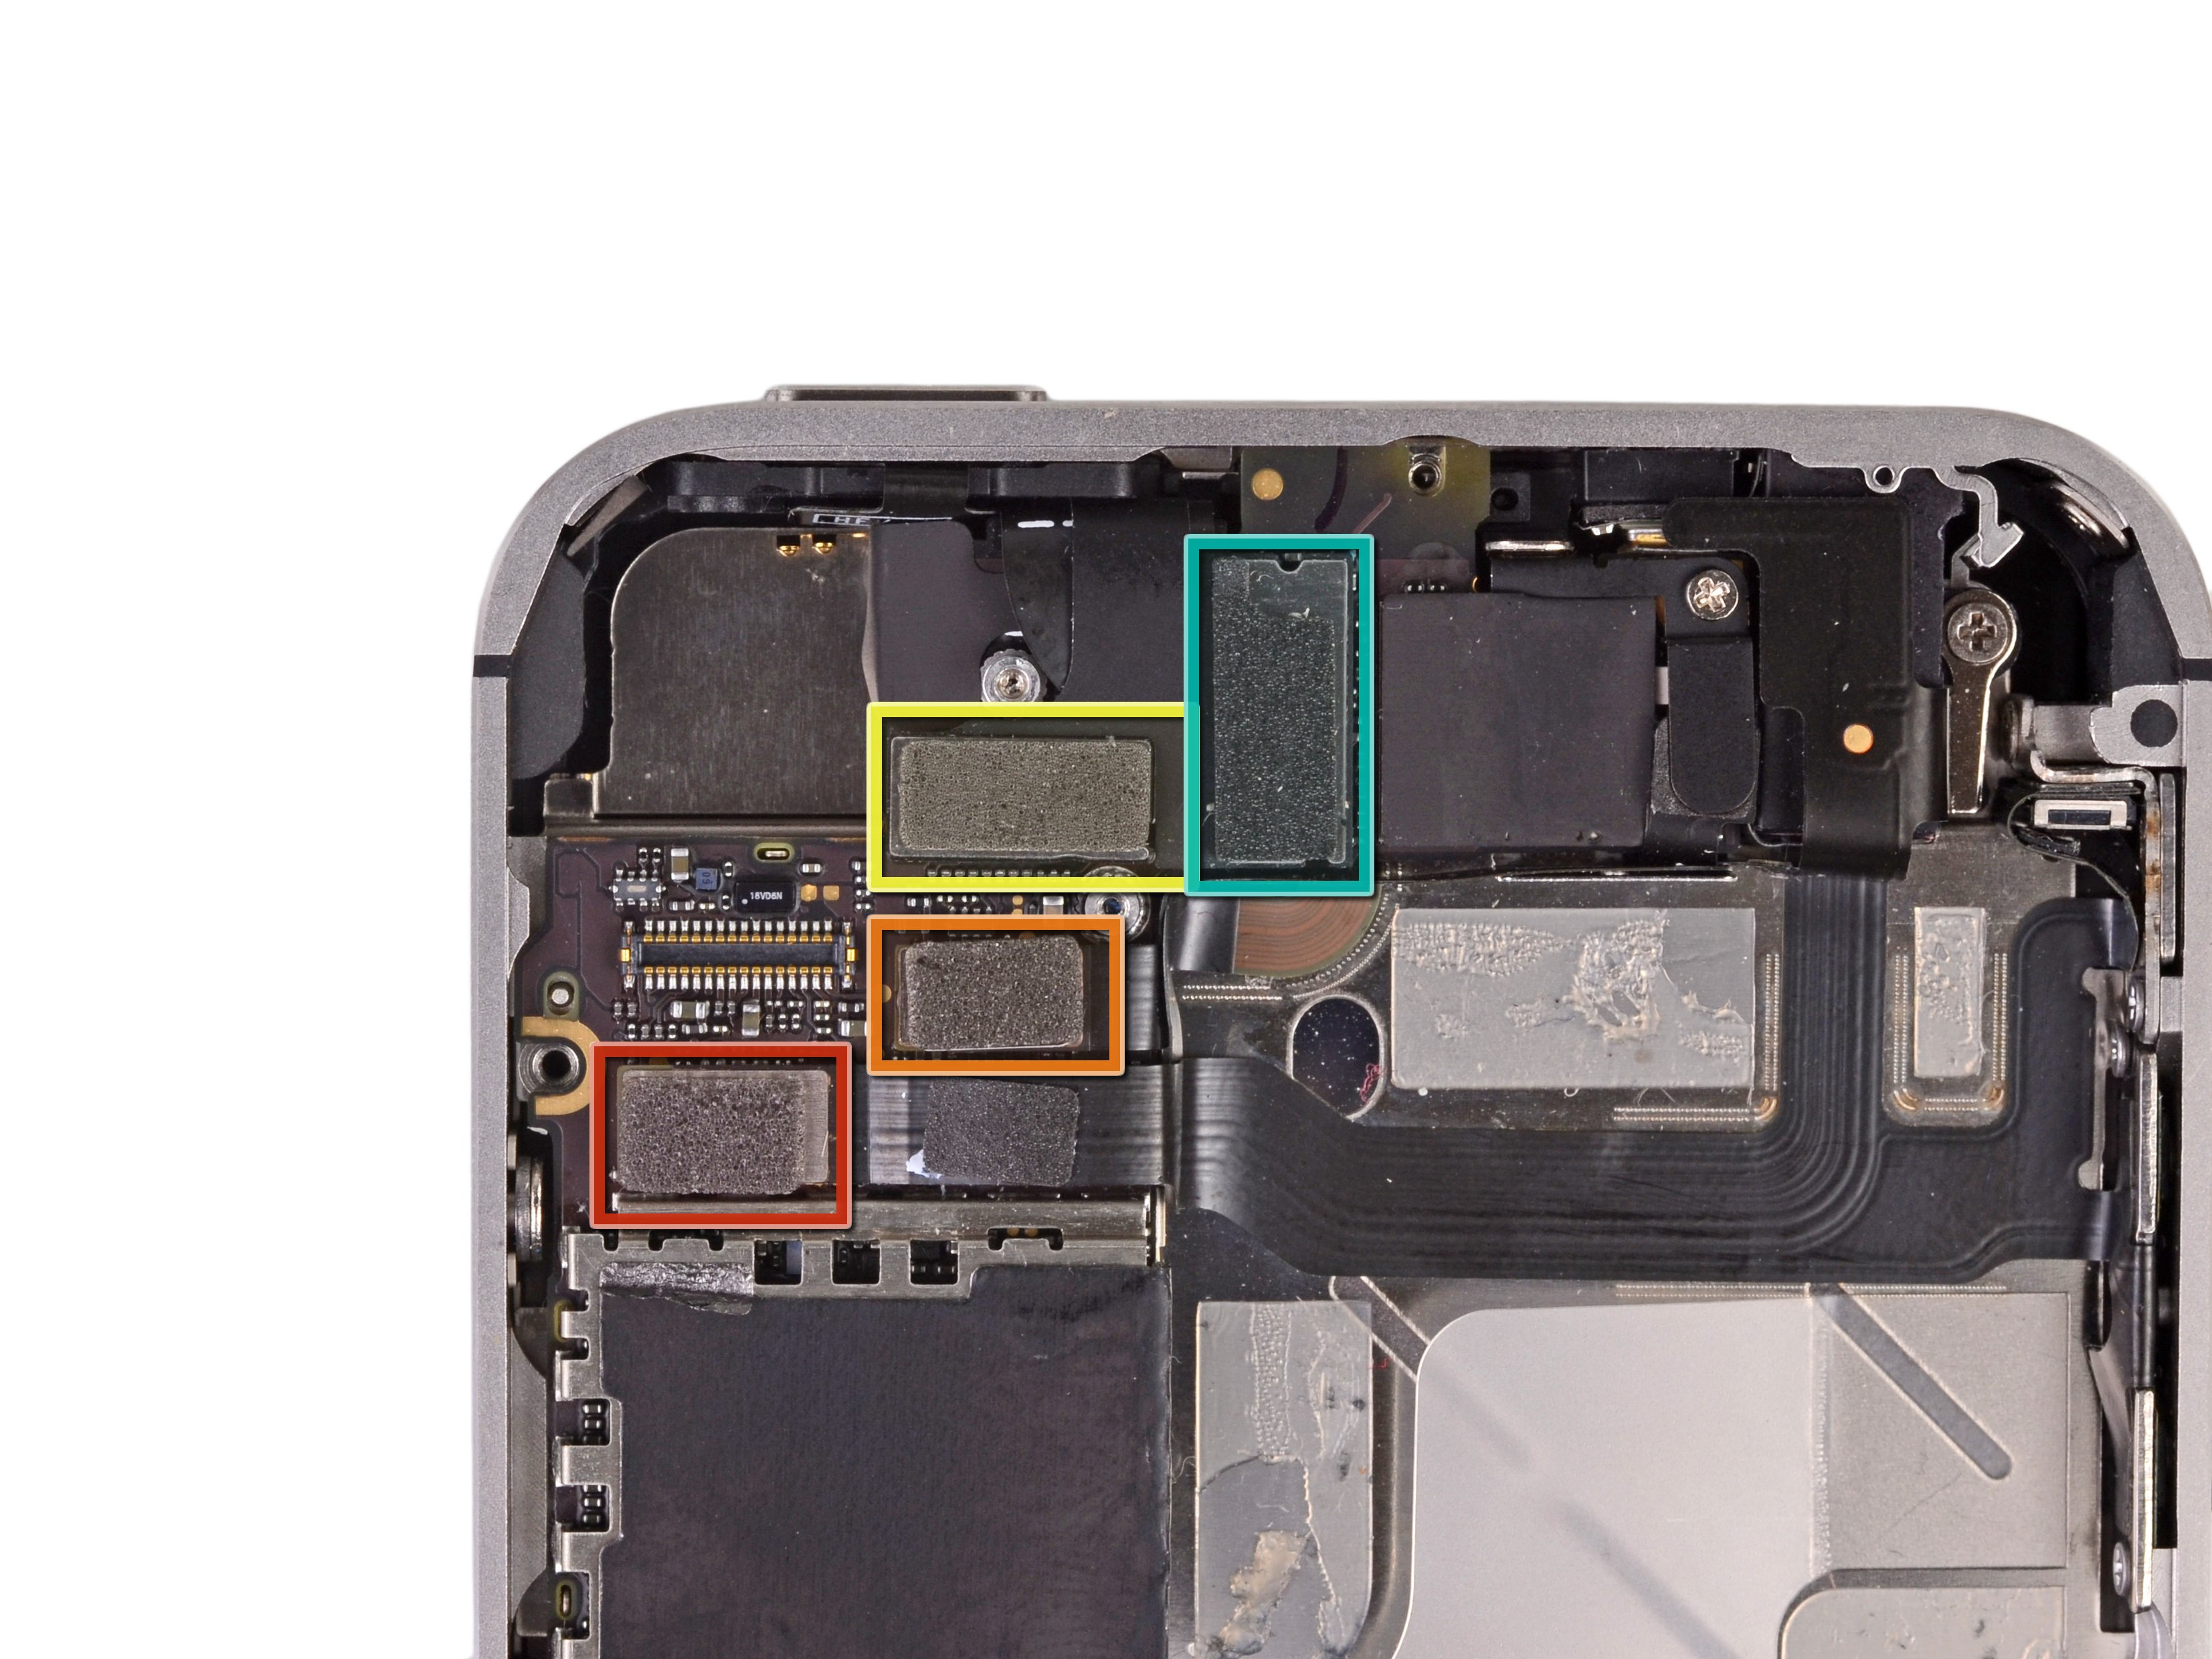 Remplacement De La Carte Mere De L Iphone 4s Tutoriel De Reparation Ifixit